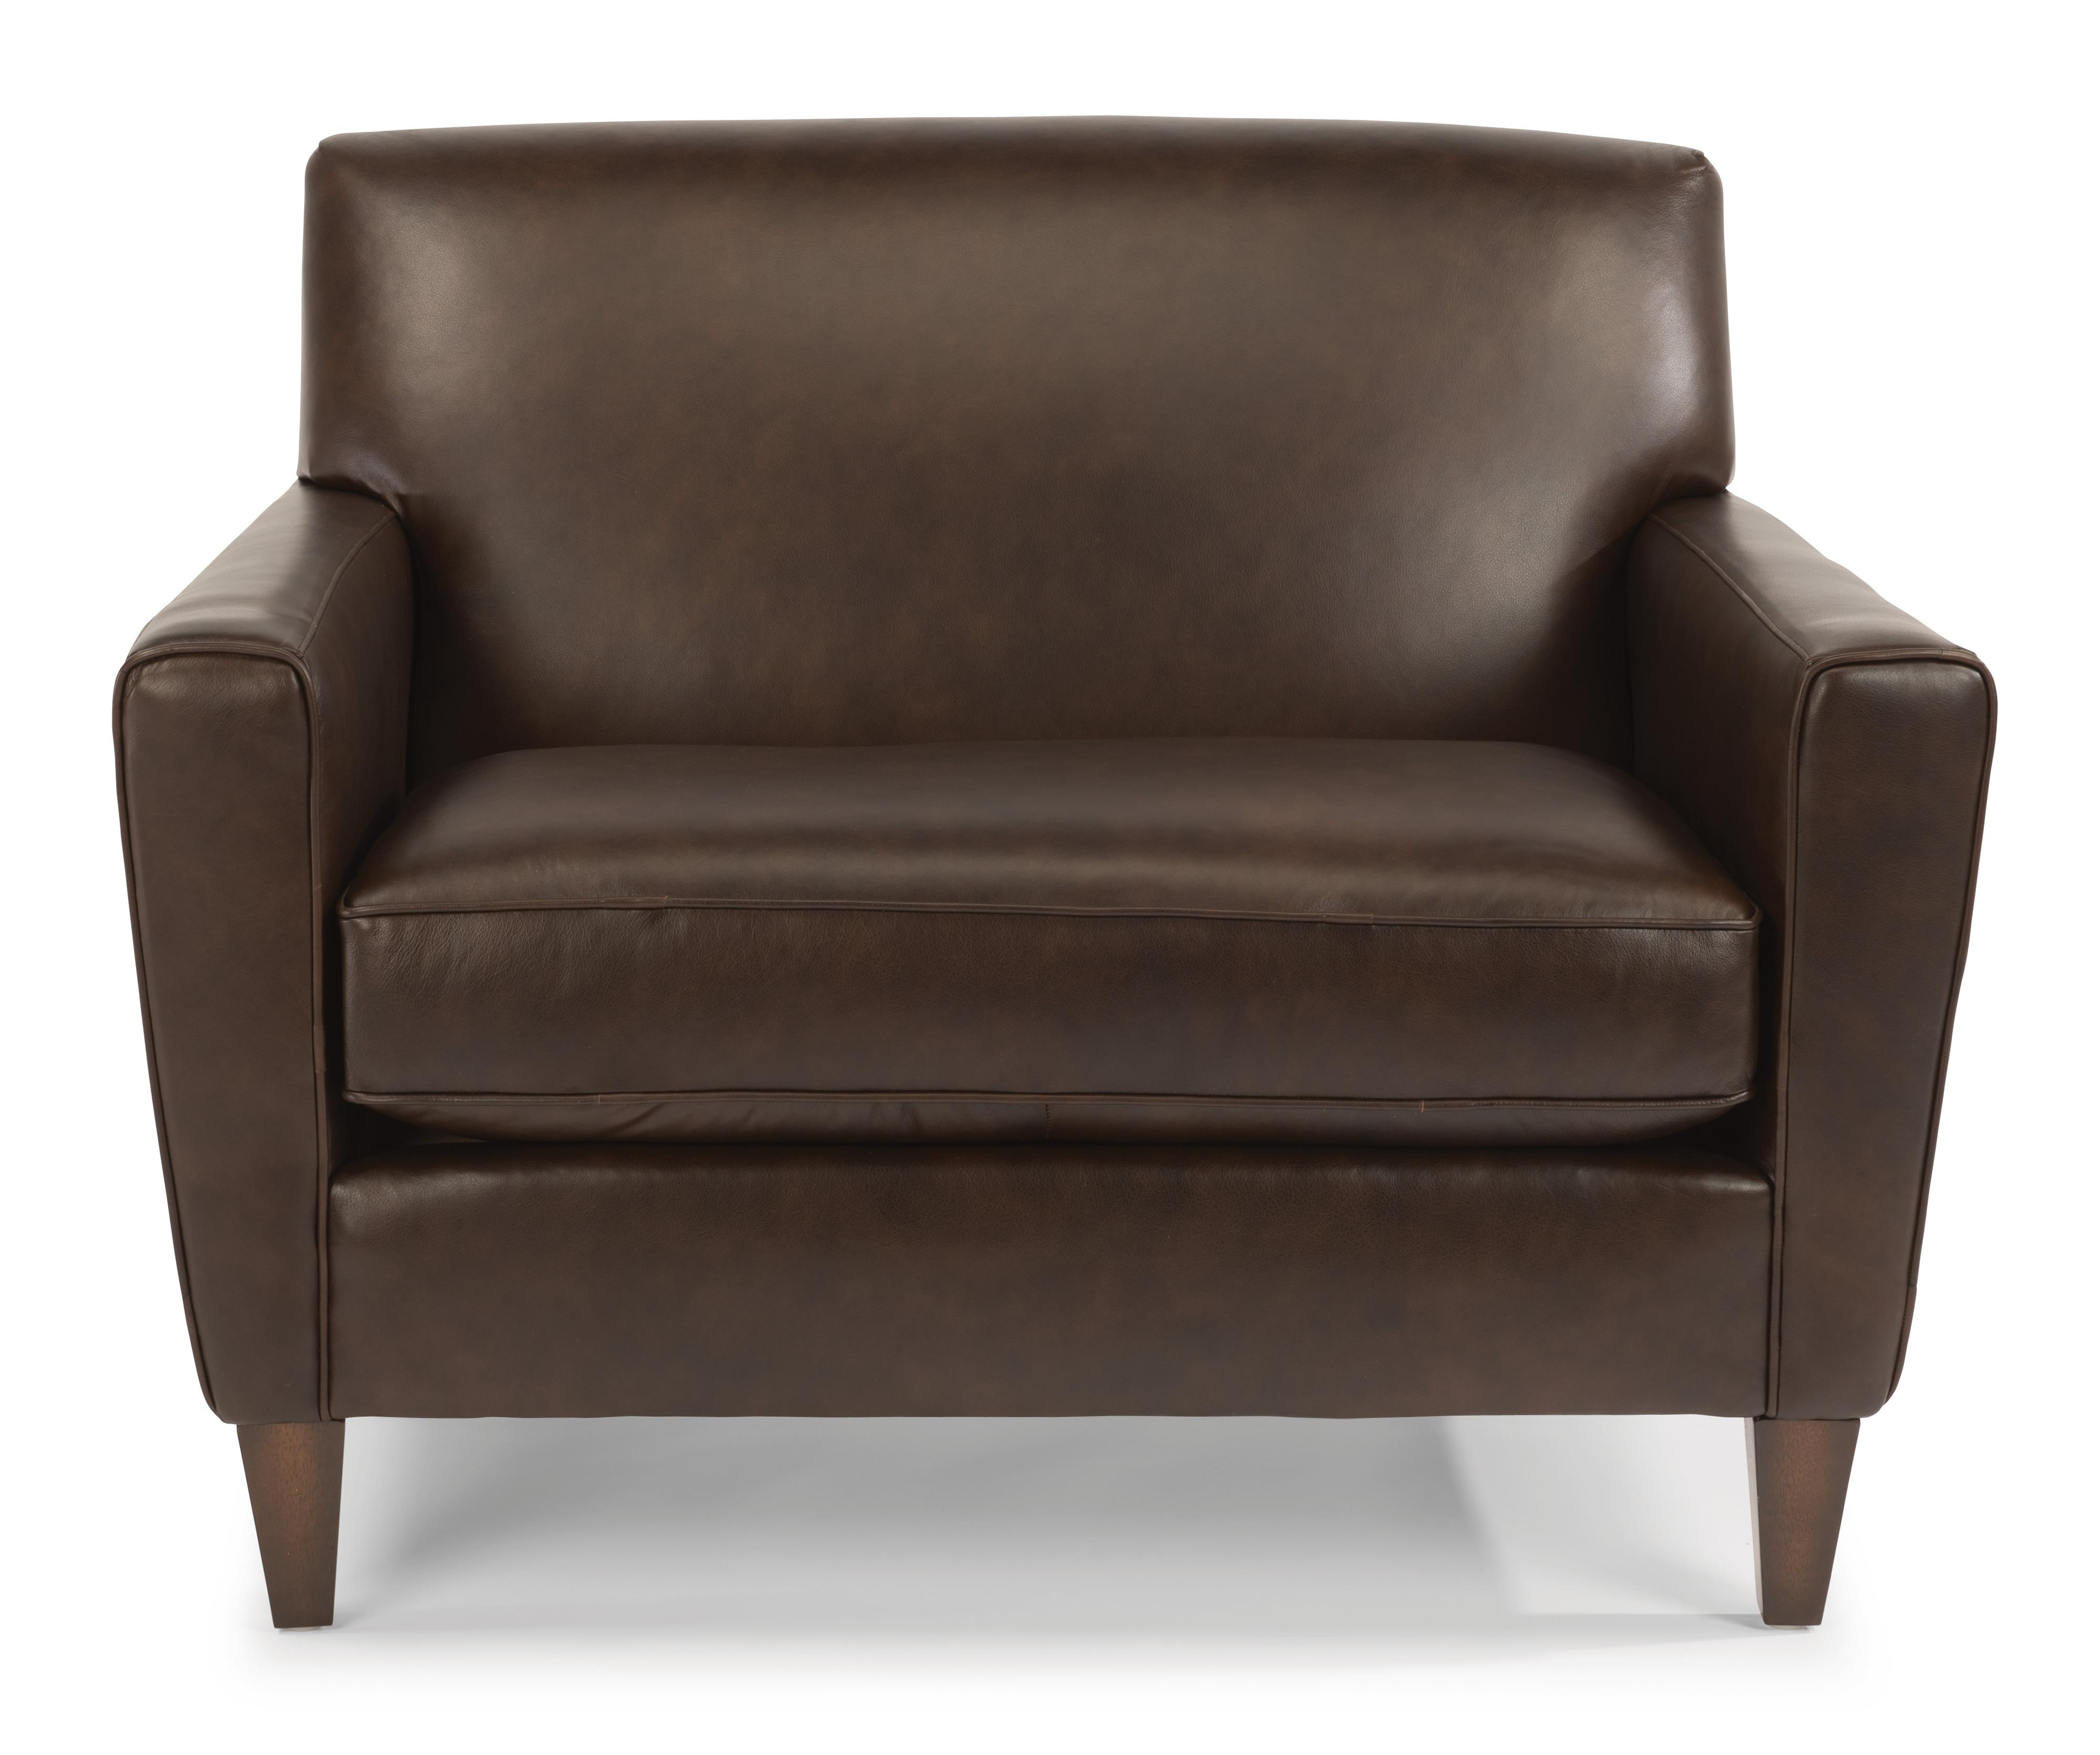 Flexsteel Digby Contemporary Chair And 1 2 Dunk Bright Furniture Ch